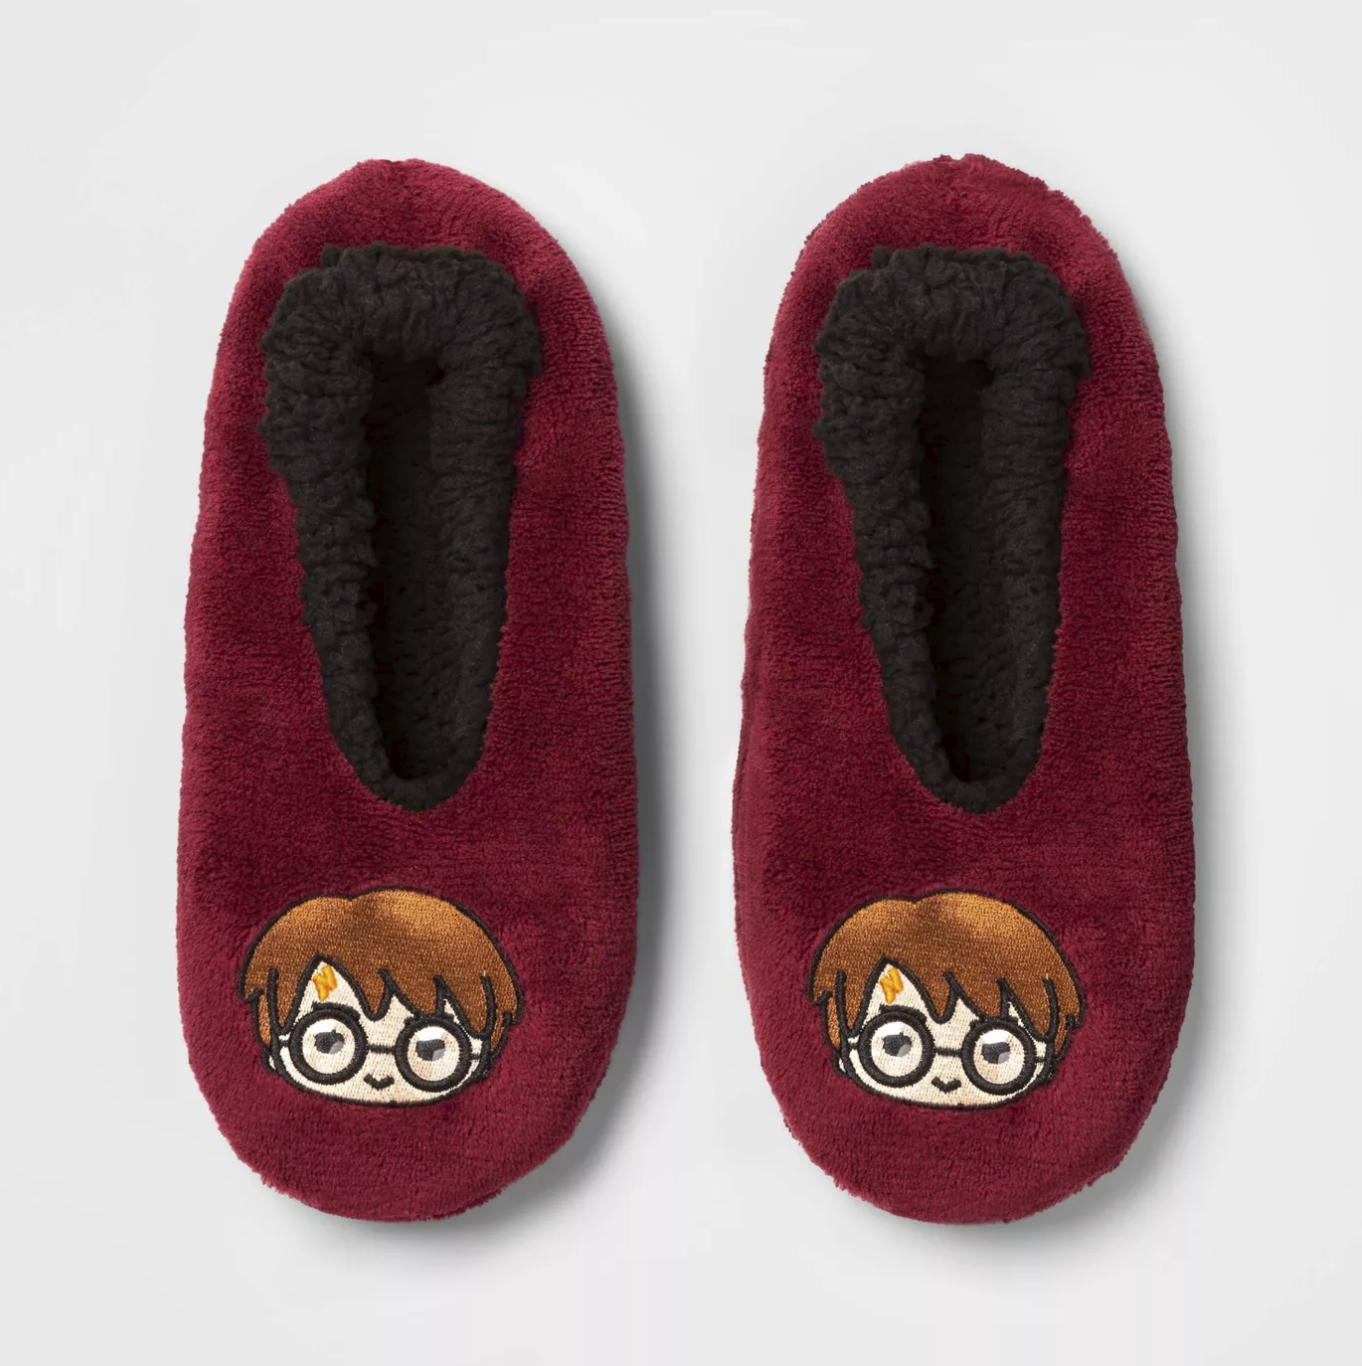 They're a deep red with animated Harry Potter heads across the toe. They look like socks but are thicker.